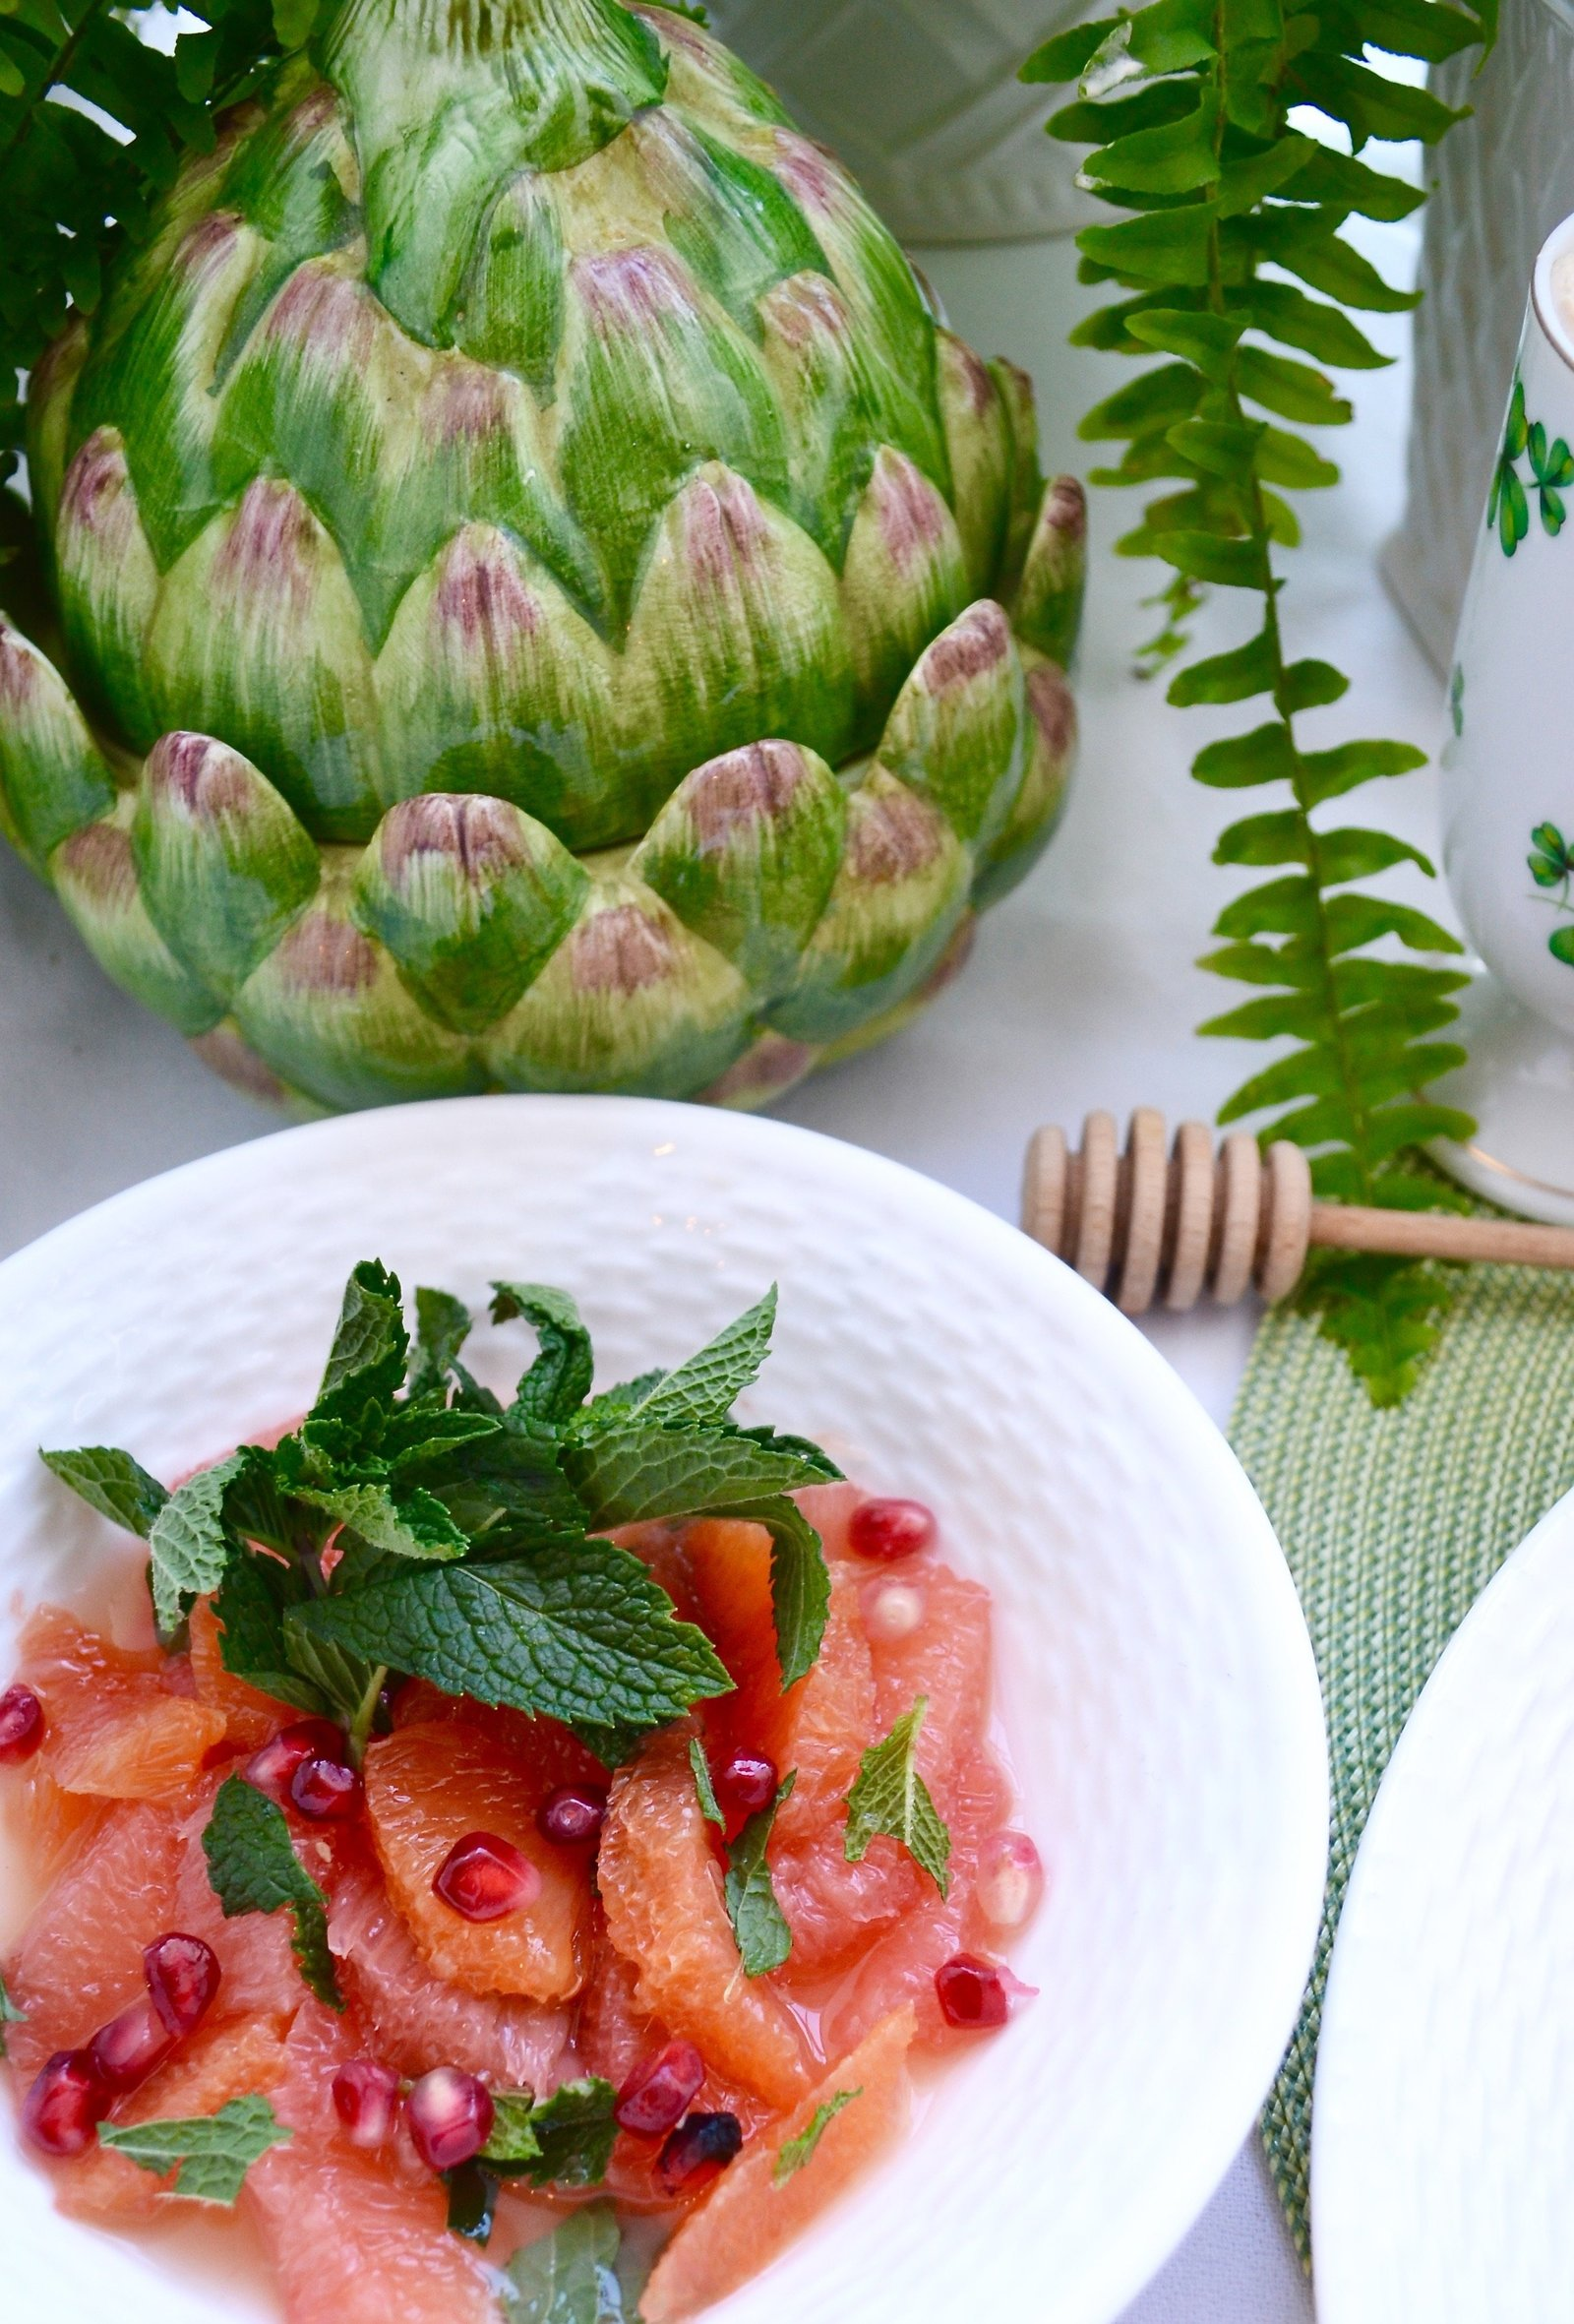 Grapefruit and Citrus Salad with Mint